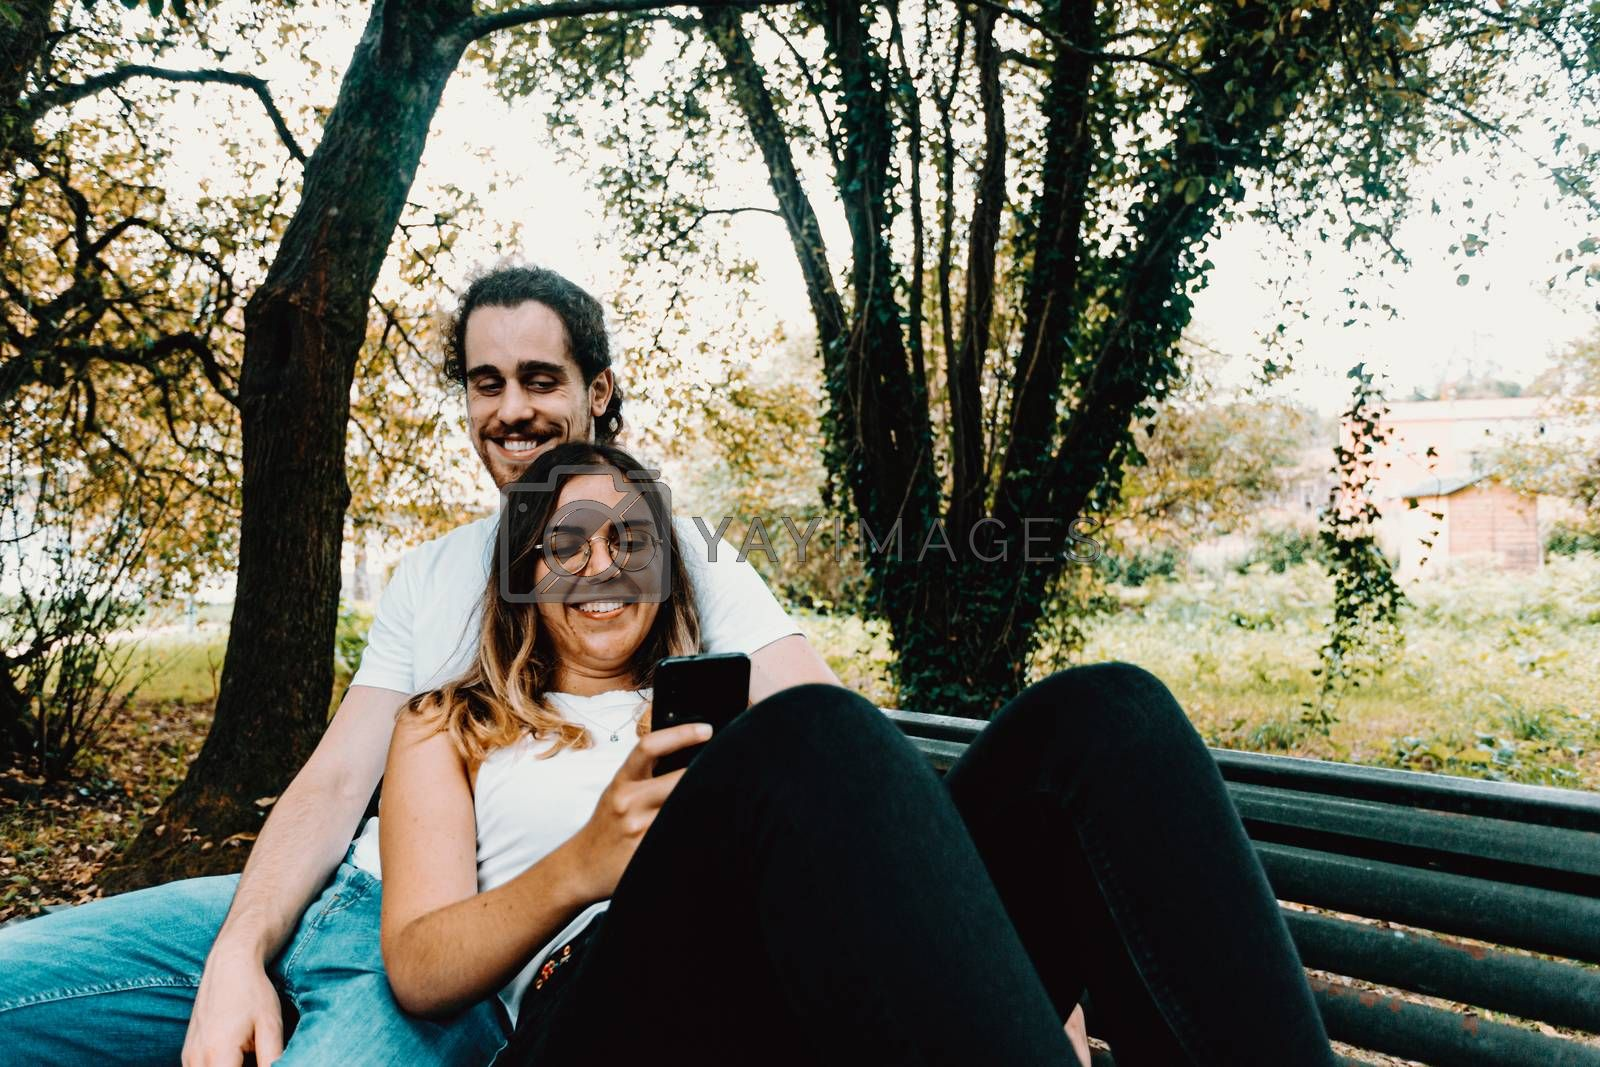 A young couple resting in a bench while looking the phone in the park